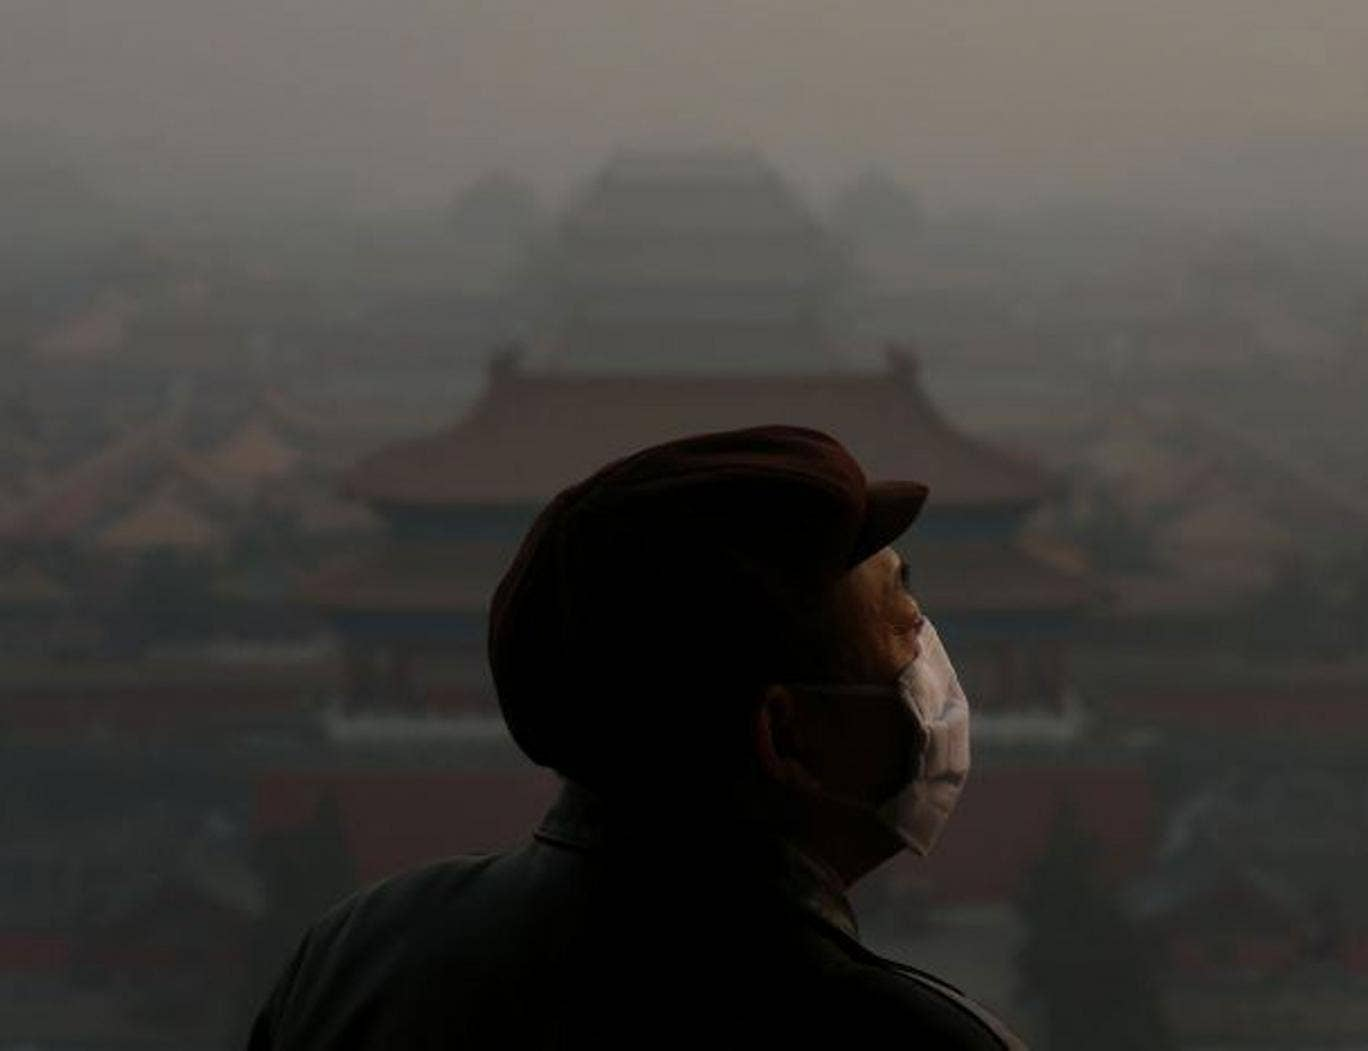 A tourist wearing the mask looks at the Forbidden City, Beijing